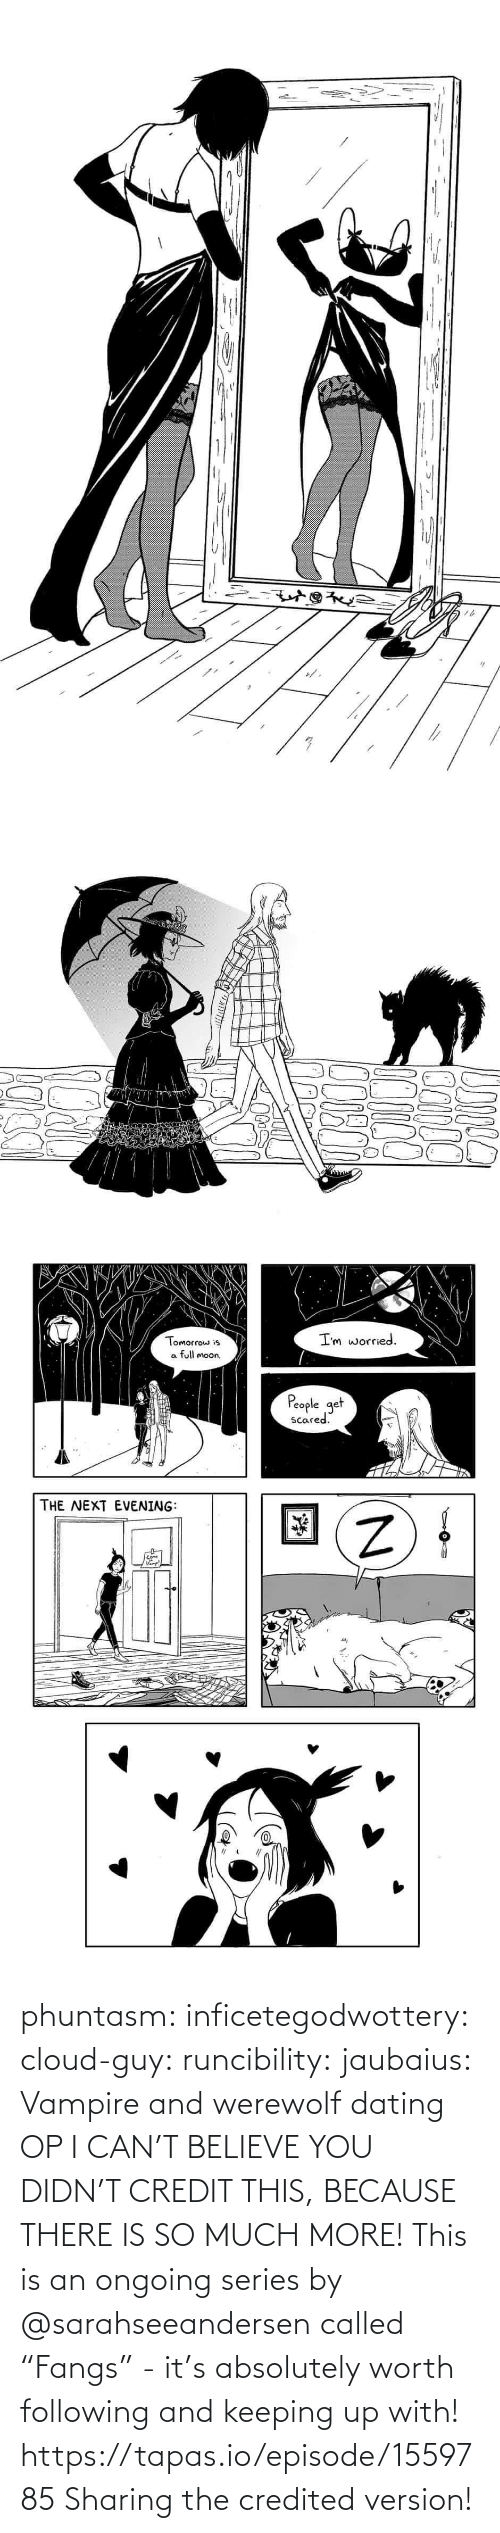 "vampire: phuntasm: inficetegodwottery:  cloud-guy:   runcibility:  jaubaius:   Vampire and werewolf dating   OP I CAN'T BELIEVE YOU DIDN'T CREDIT THIS, BECAUSE THERE IS SO MUCH MORE! This is an ongoing series by @sarahseeandersen called ""Fangs"" - it's absolutely worth following and keeping up with! https://tapas.io/episode/1559785    Sharing the credited version!"